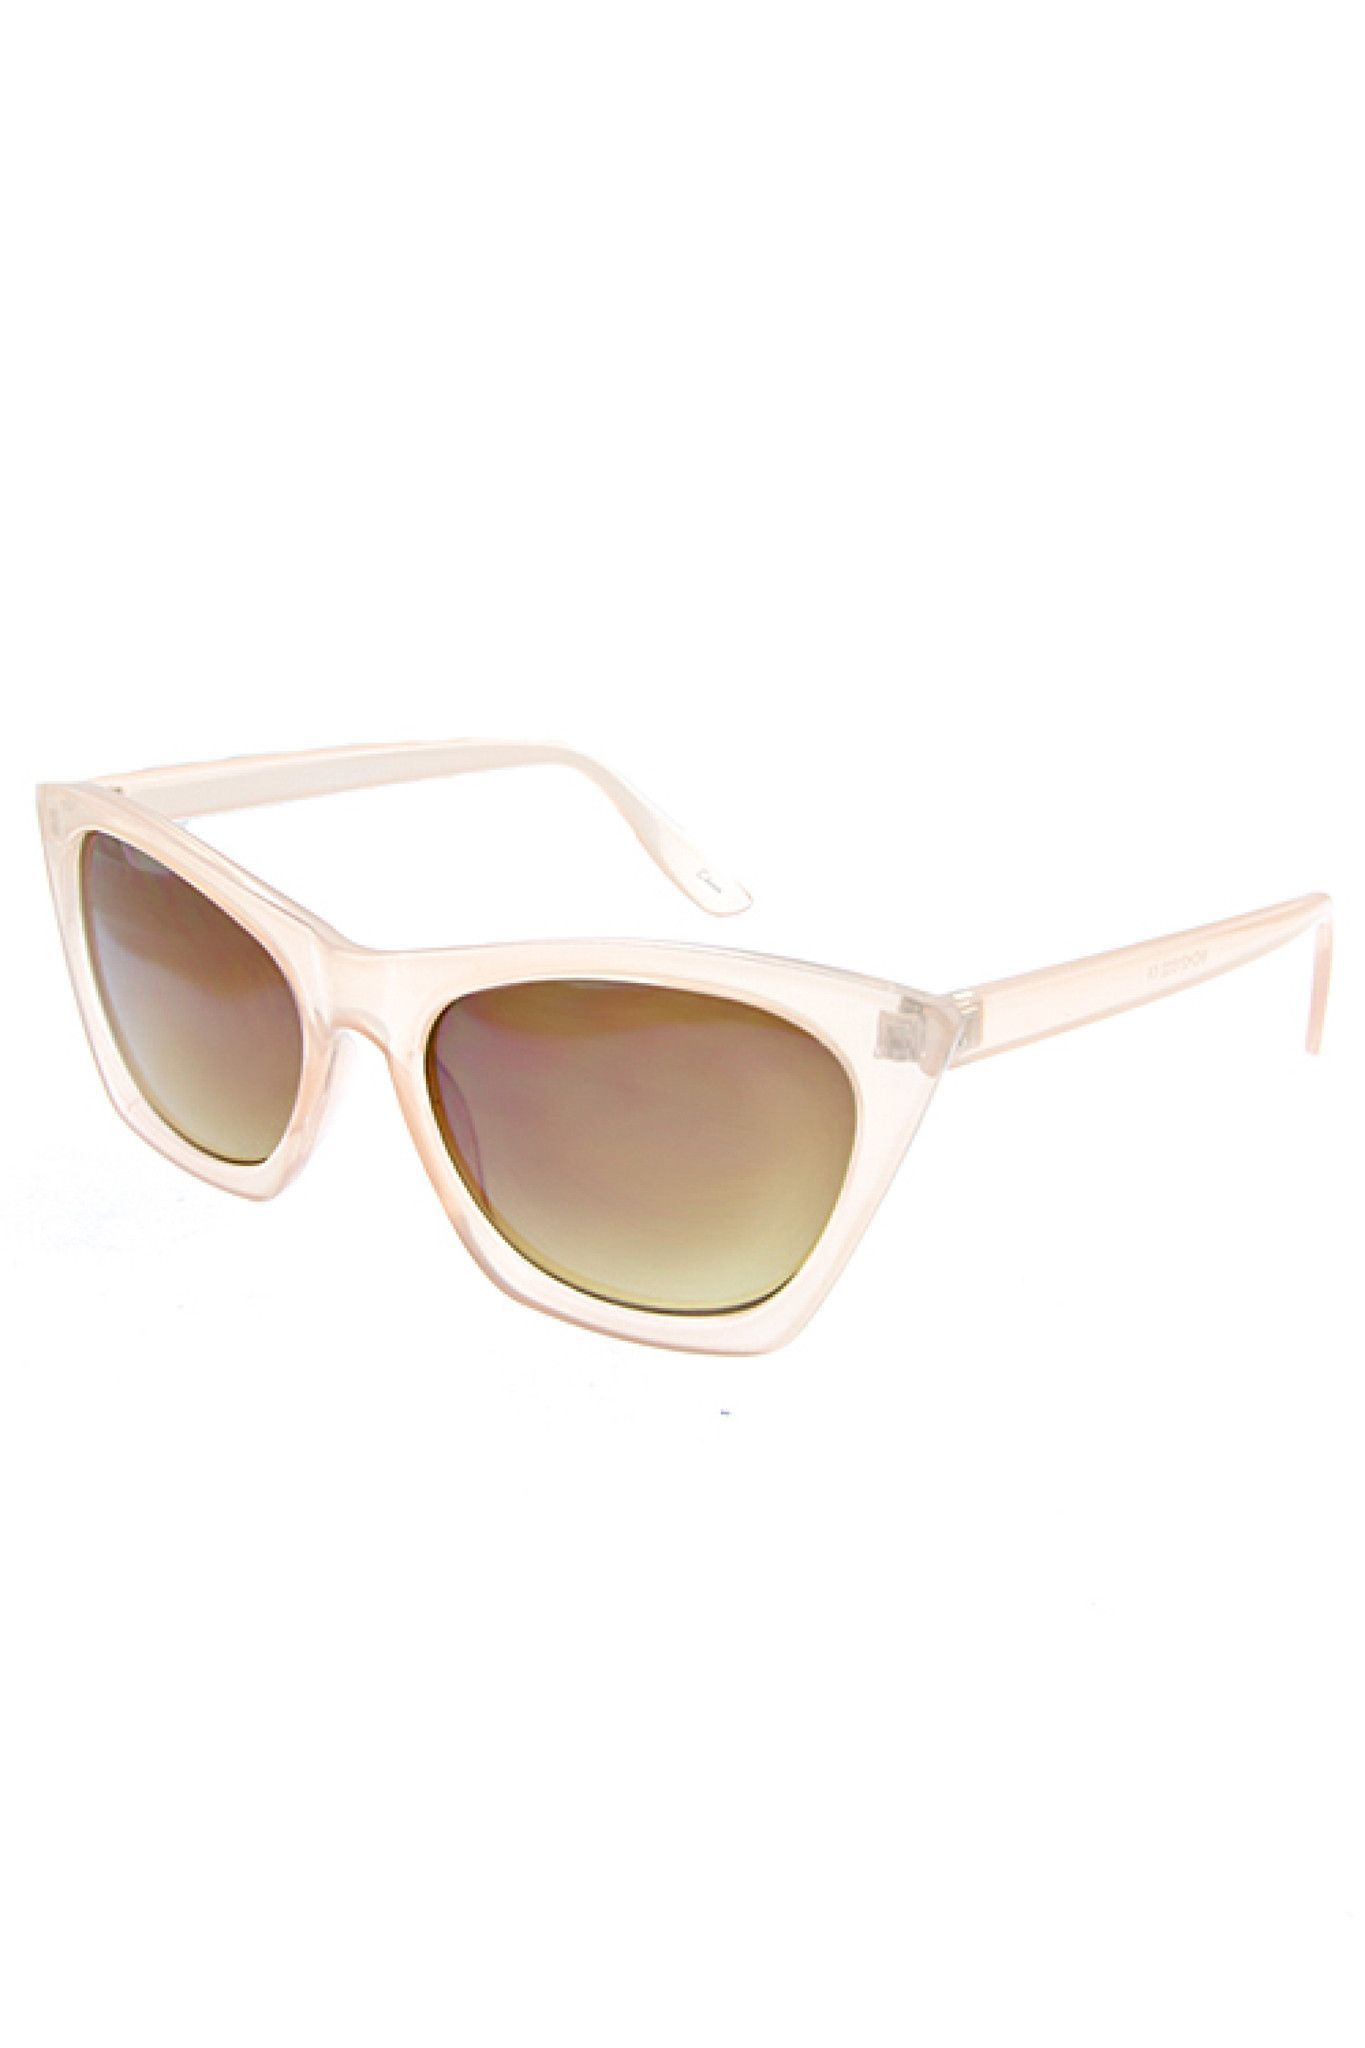 Retro Frame Sunglasses in Two Colors | TRAITS